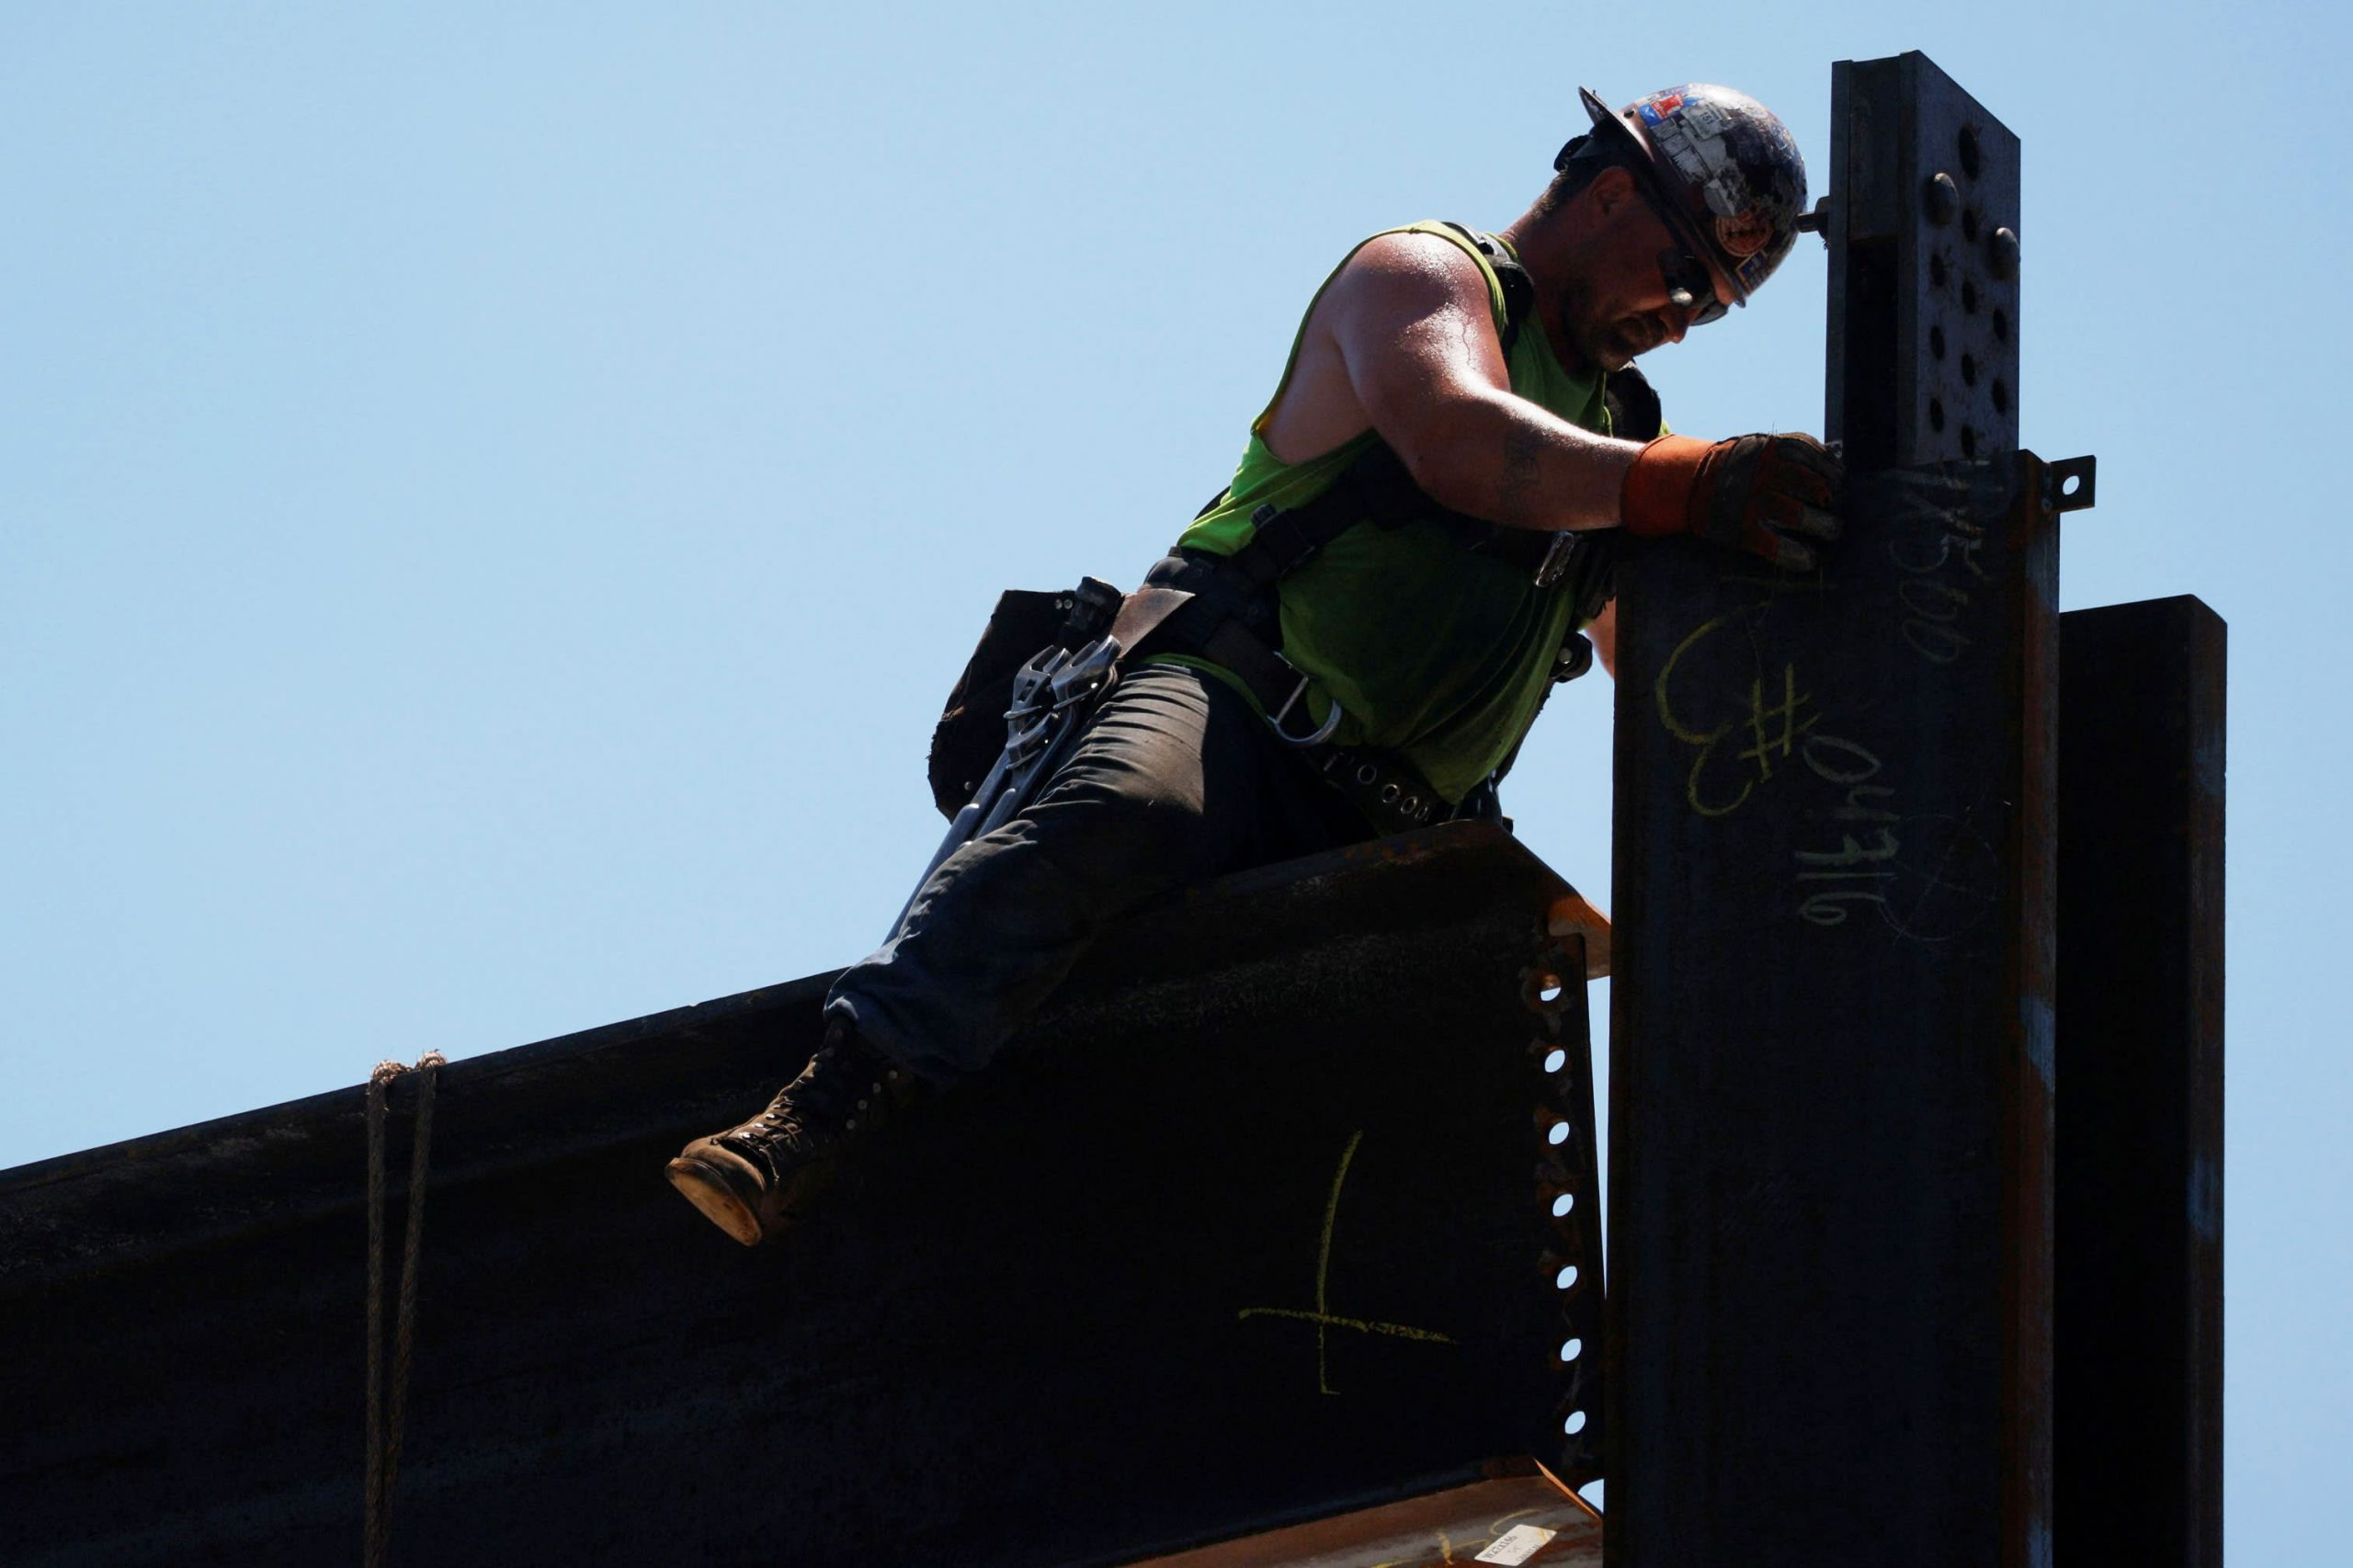 The biggest job wage boom post-pandemic is blue collar, but will it last for workers?